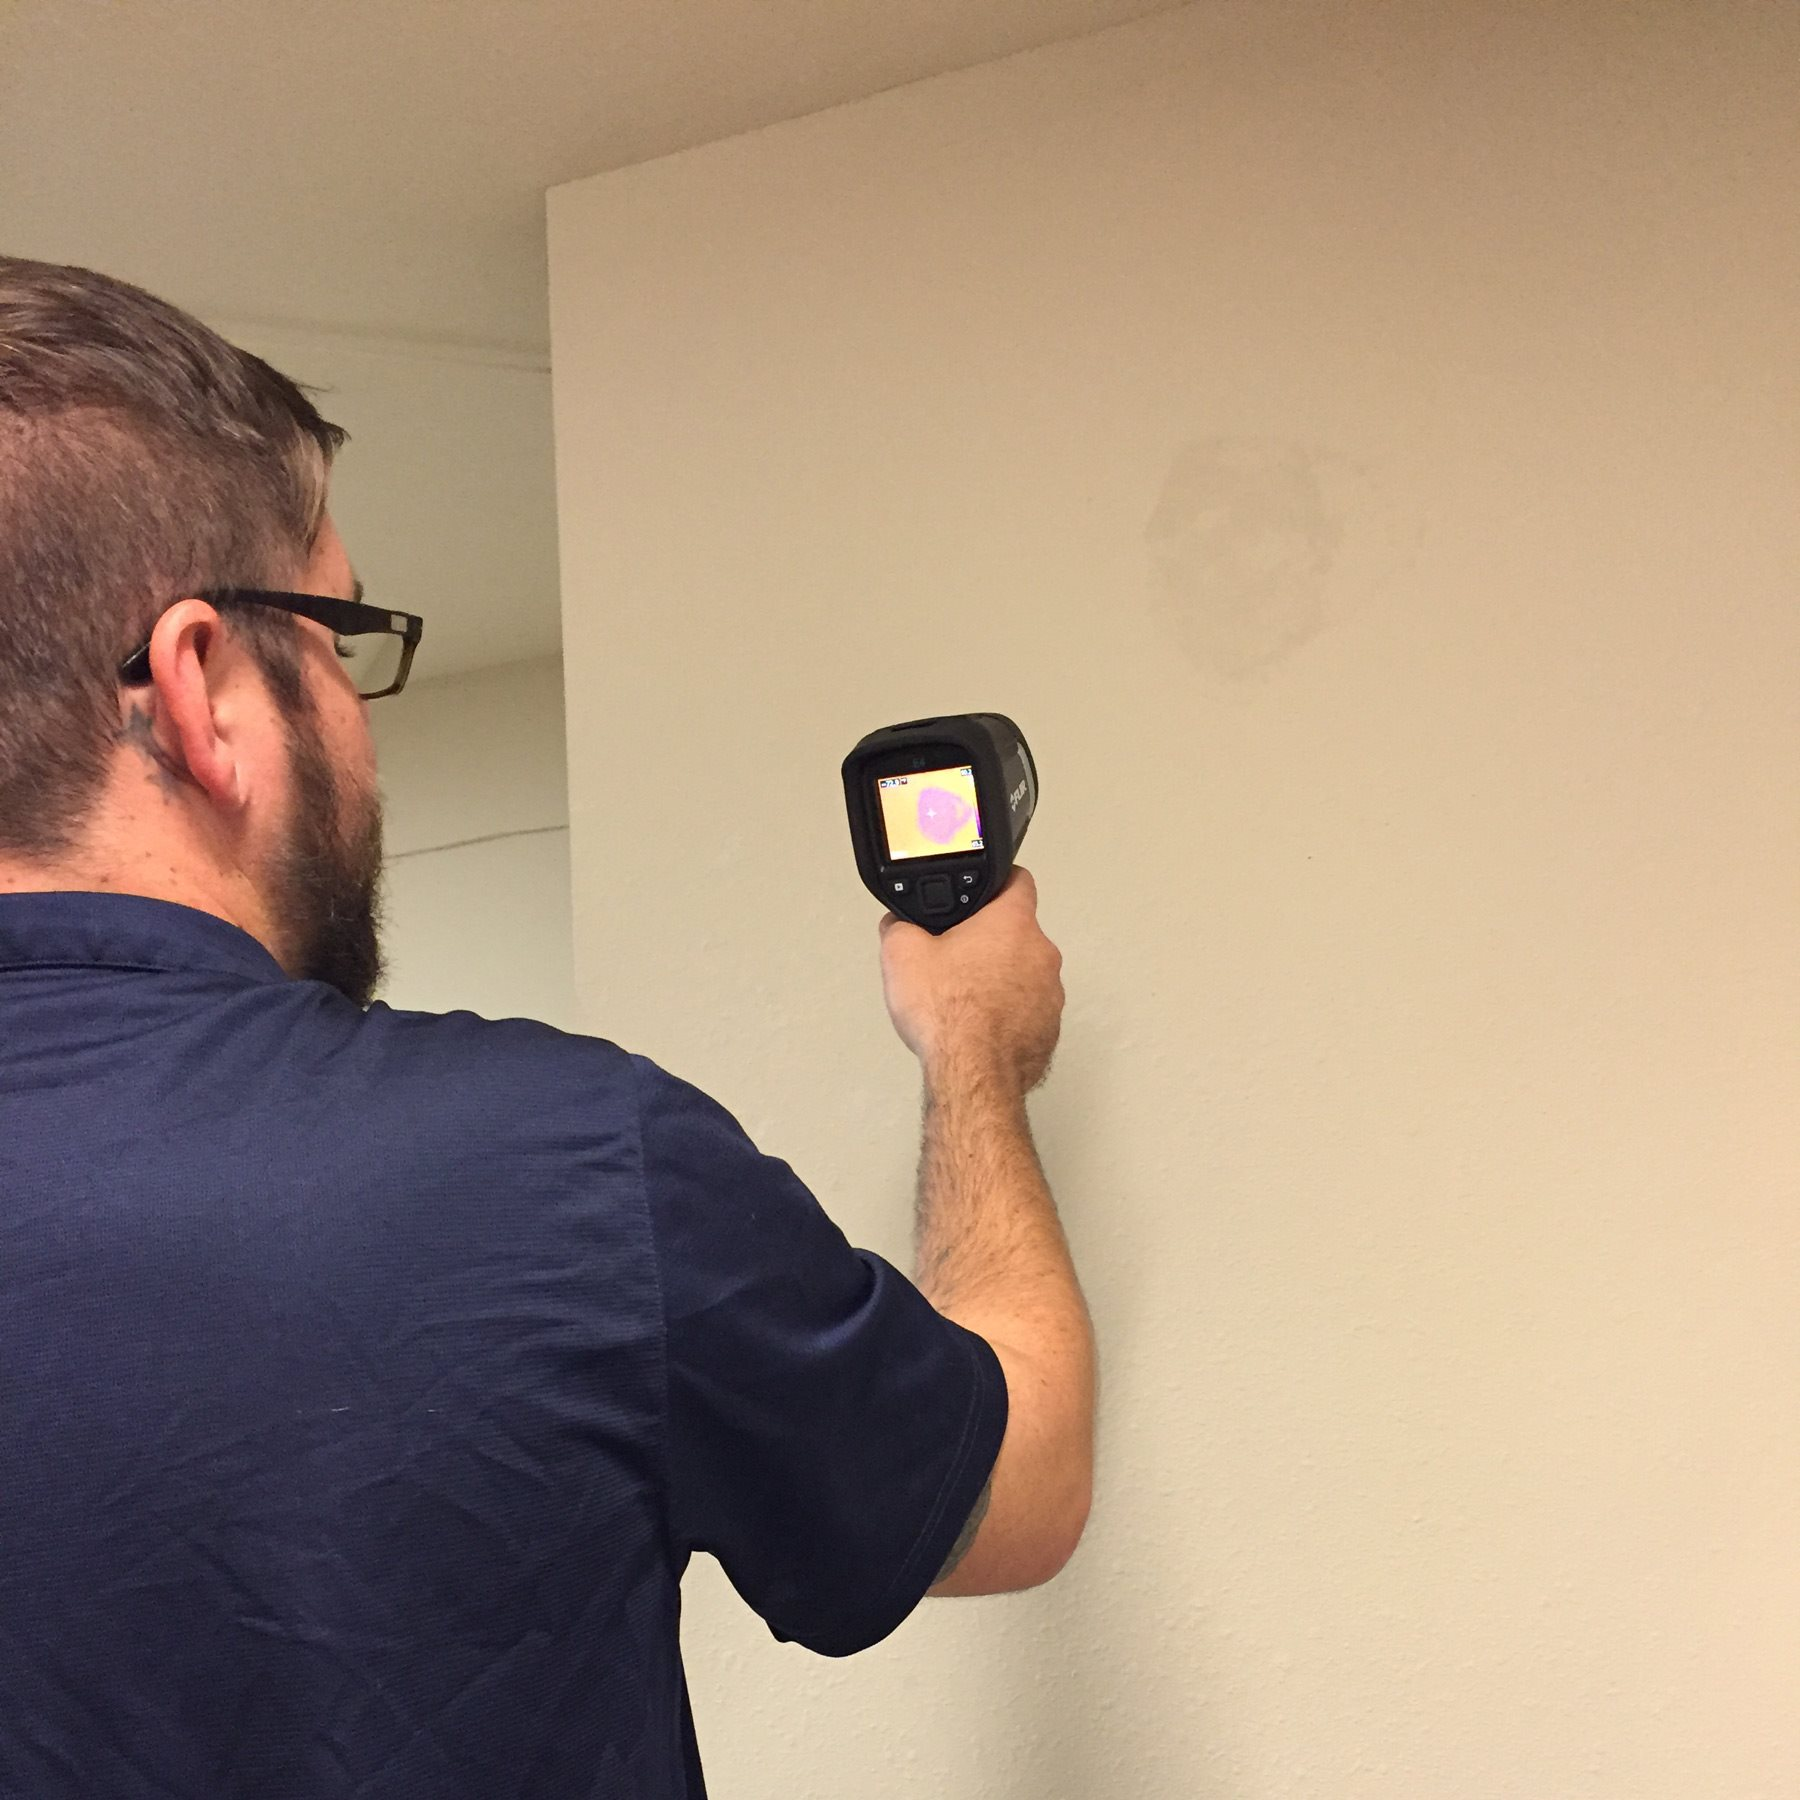 ACW technician scanning wall for mold